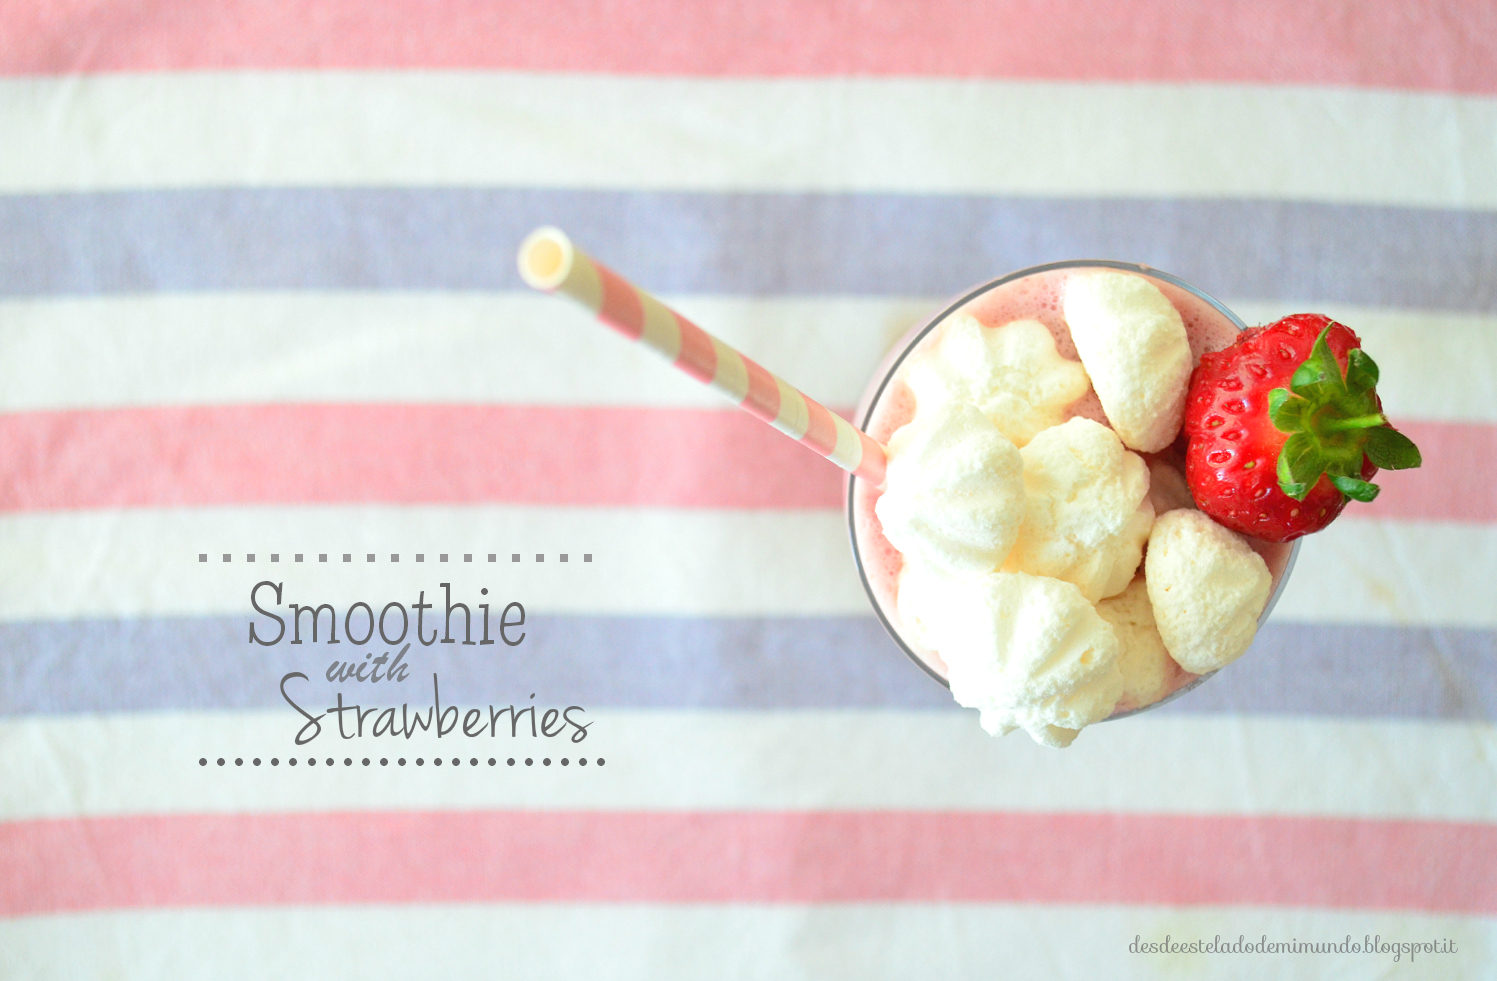 smoothie with strawberries desdeesteladodemimundo.blogspot.it